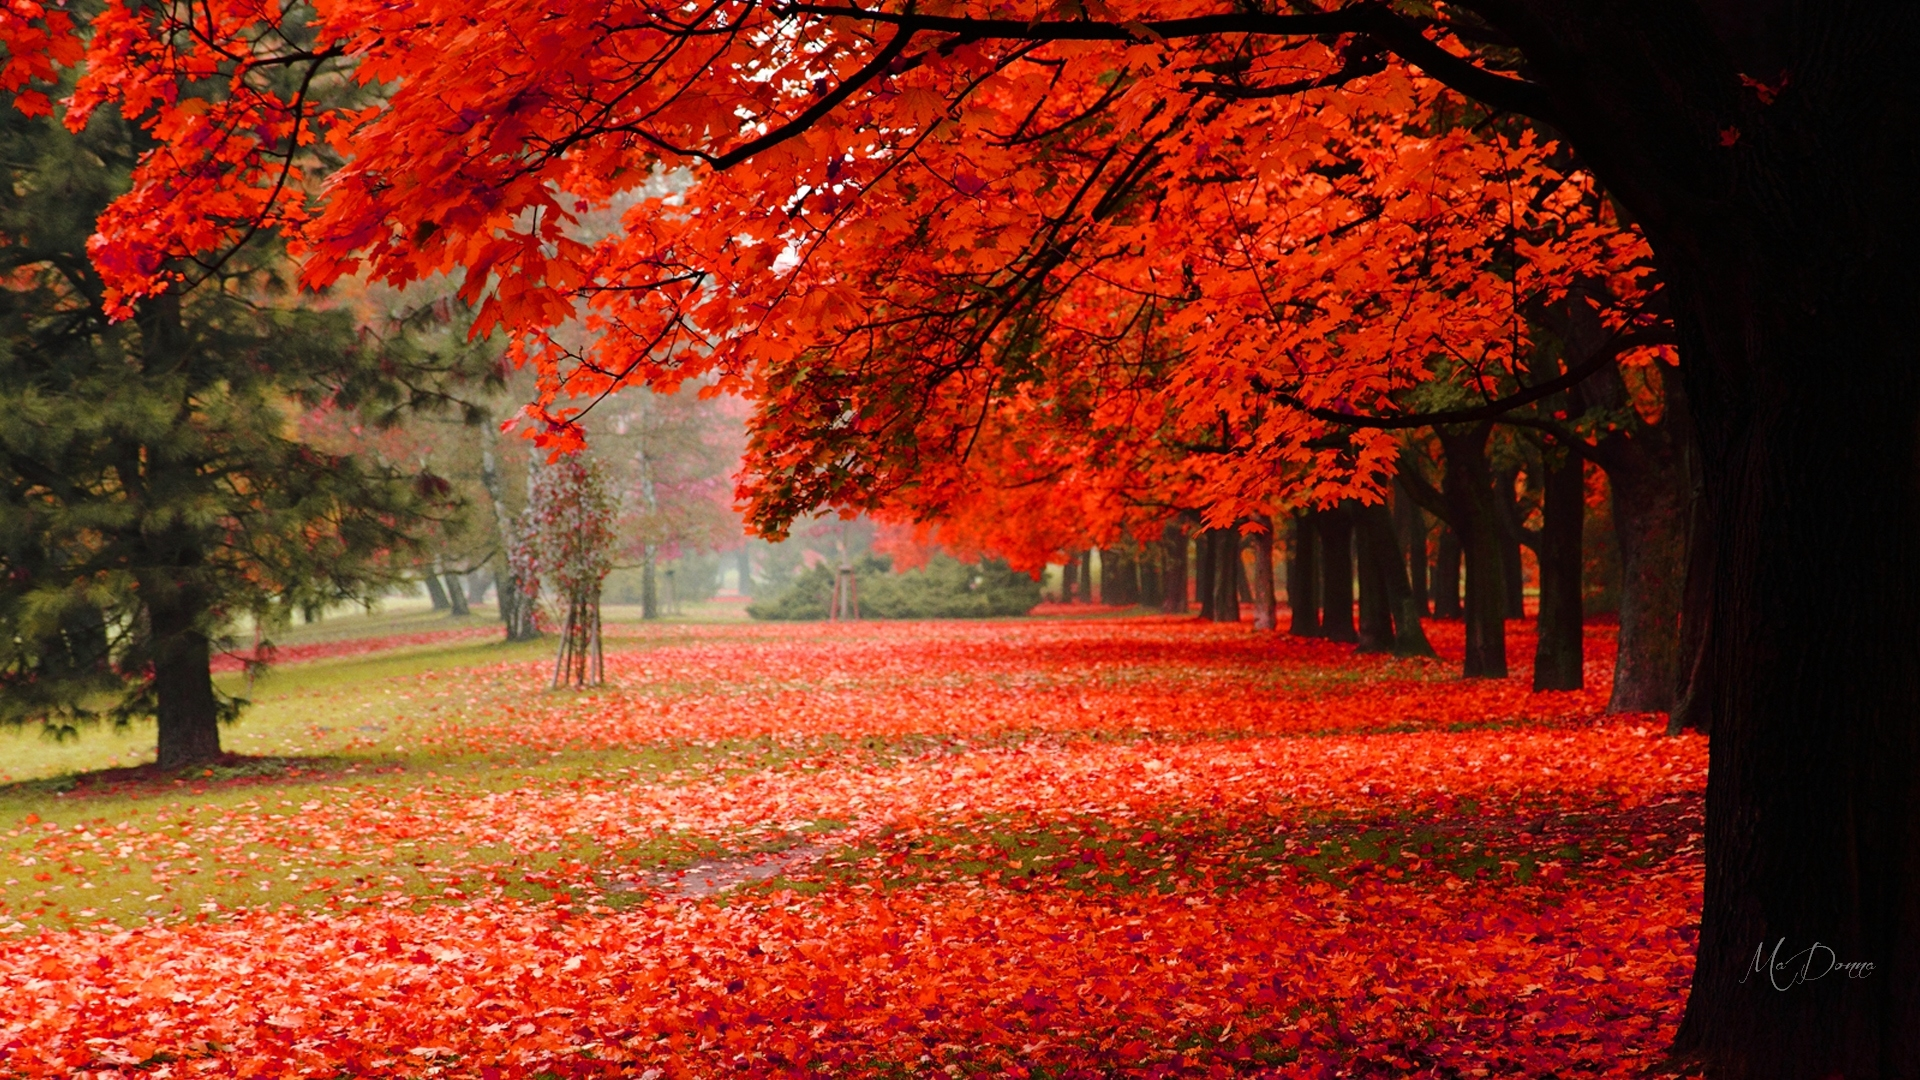 Fall Colors Wallpaper 1920x1080 Tree In Autumn Park Hd Wallpaper Background Image